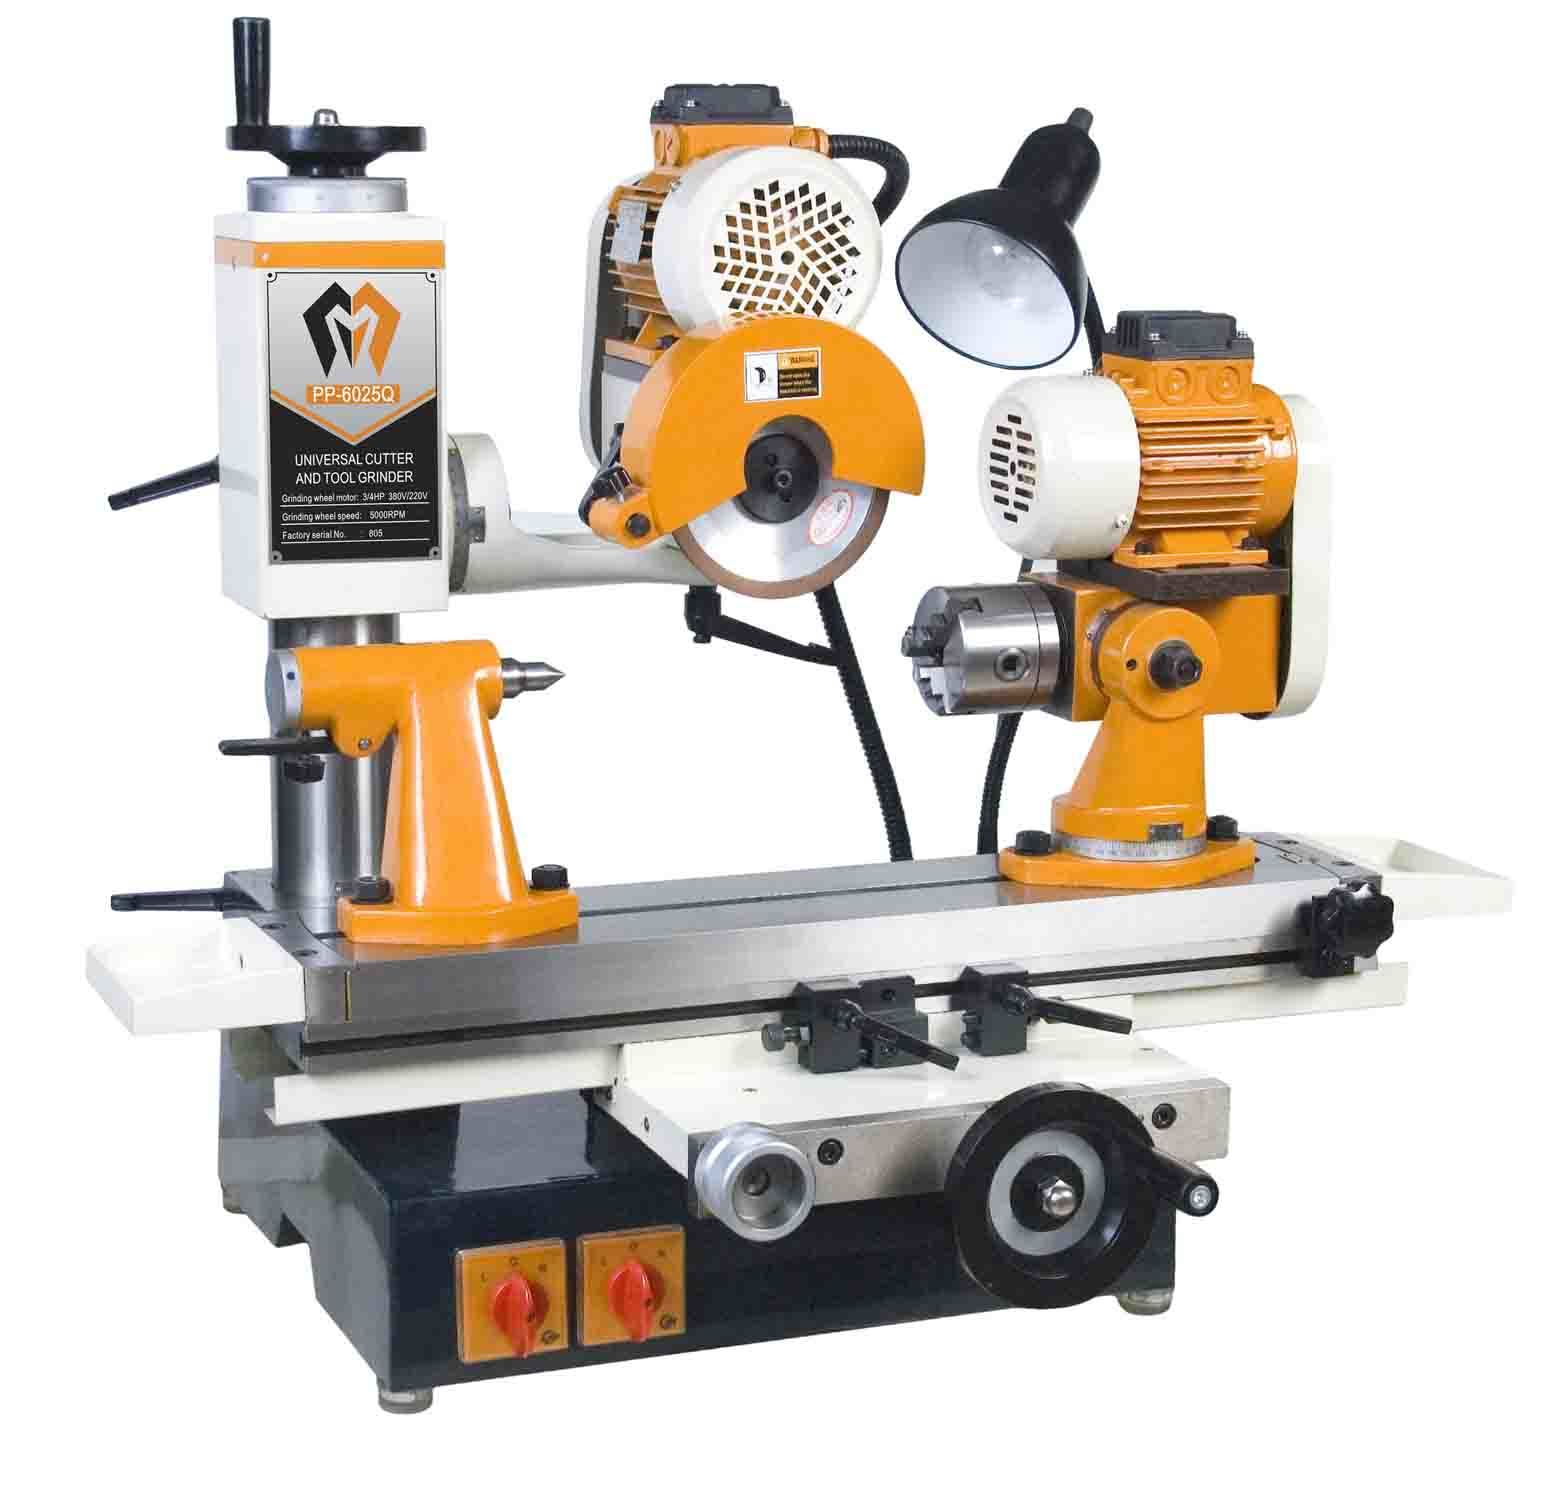 Tool And Cutter Grinder ~ Tool cutter grinding free software and shareware filesmon